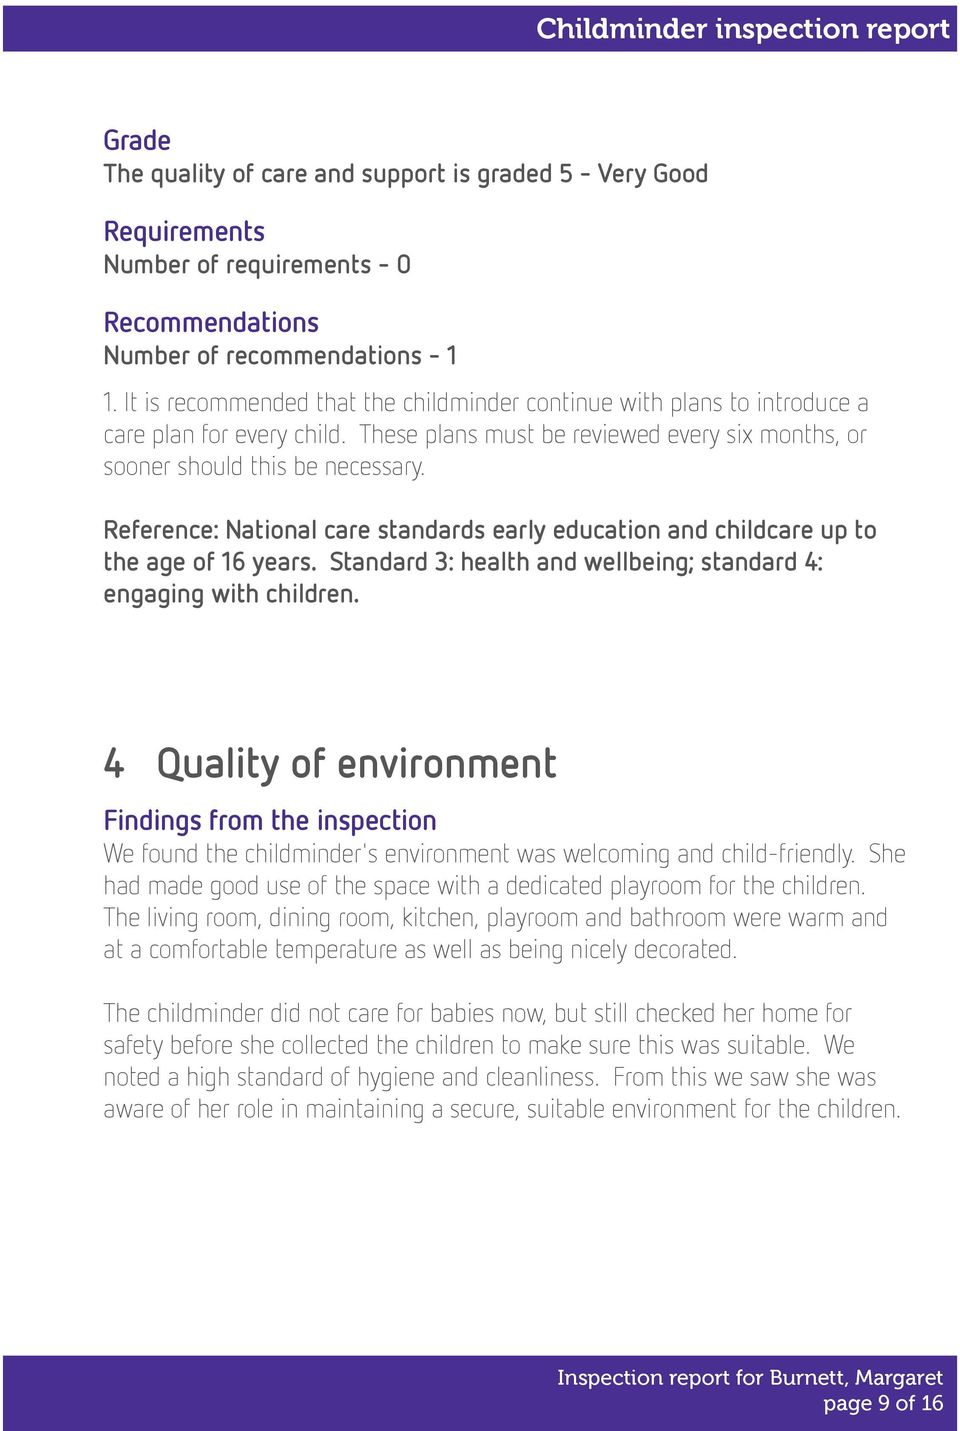 Reference: National care standards early education and childcare up to the age of 16 years. Standard 3: health and wellbeing; standard 4: engaging with children.